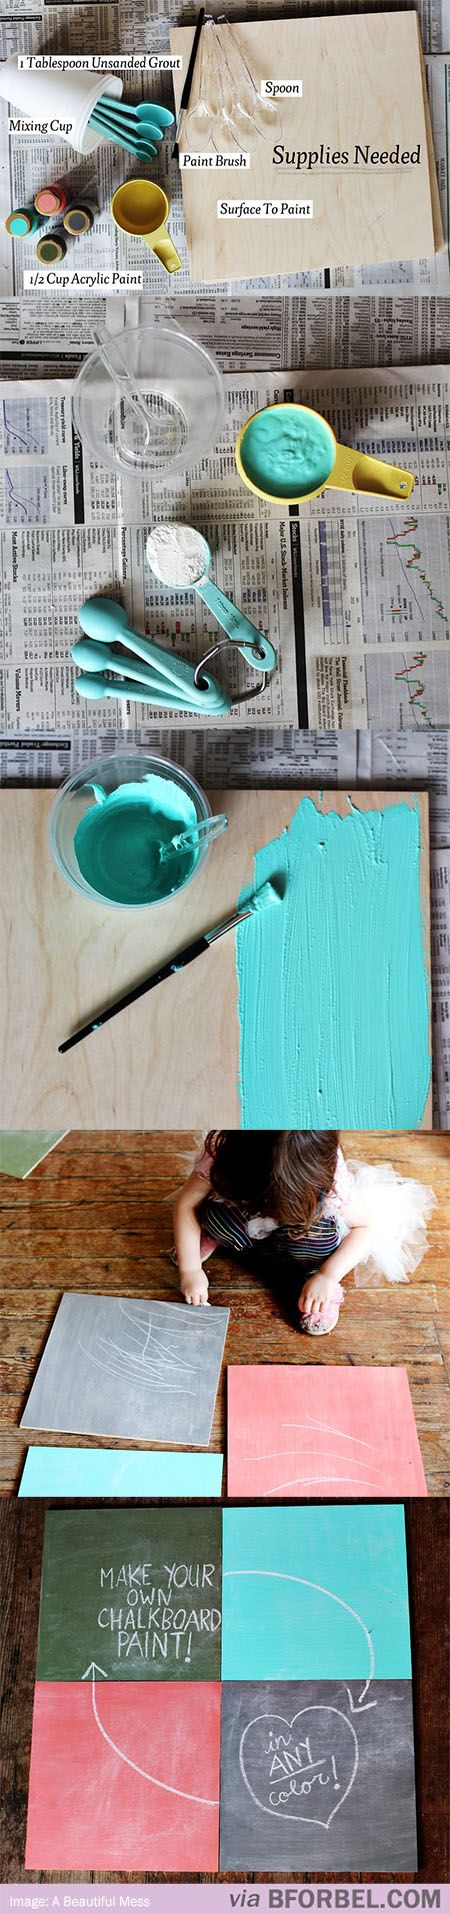 How to make Chalkboard Paint in any color. #DIY #creative #fun #paint